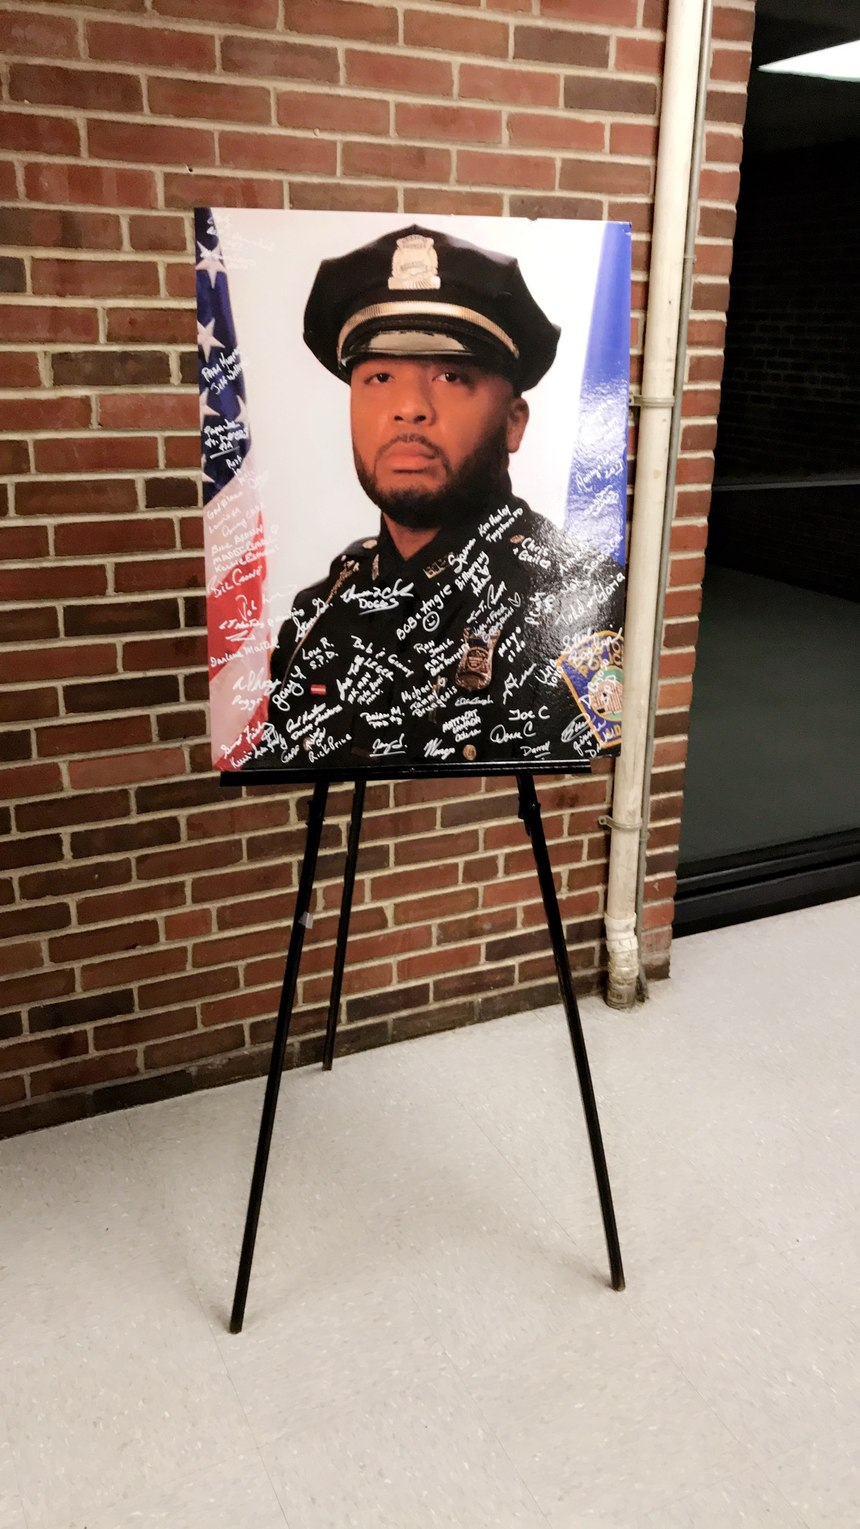 At a memorial ceremony, signatures cover an image of D.J. (Photo/Nicole Simmonds)